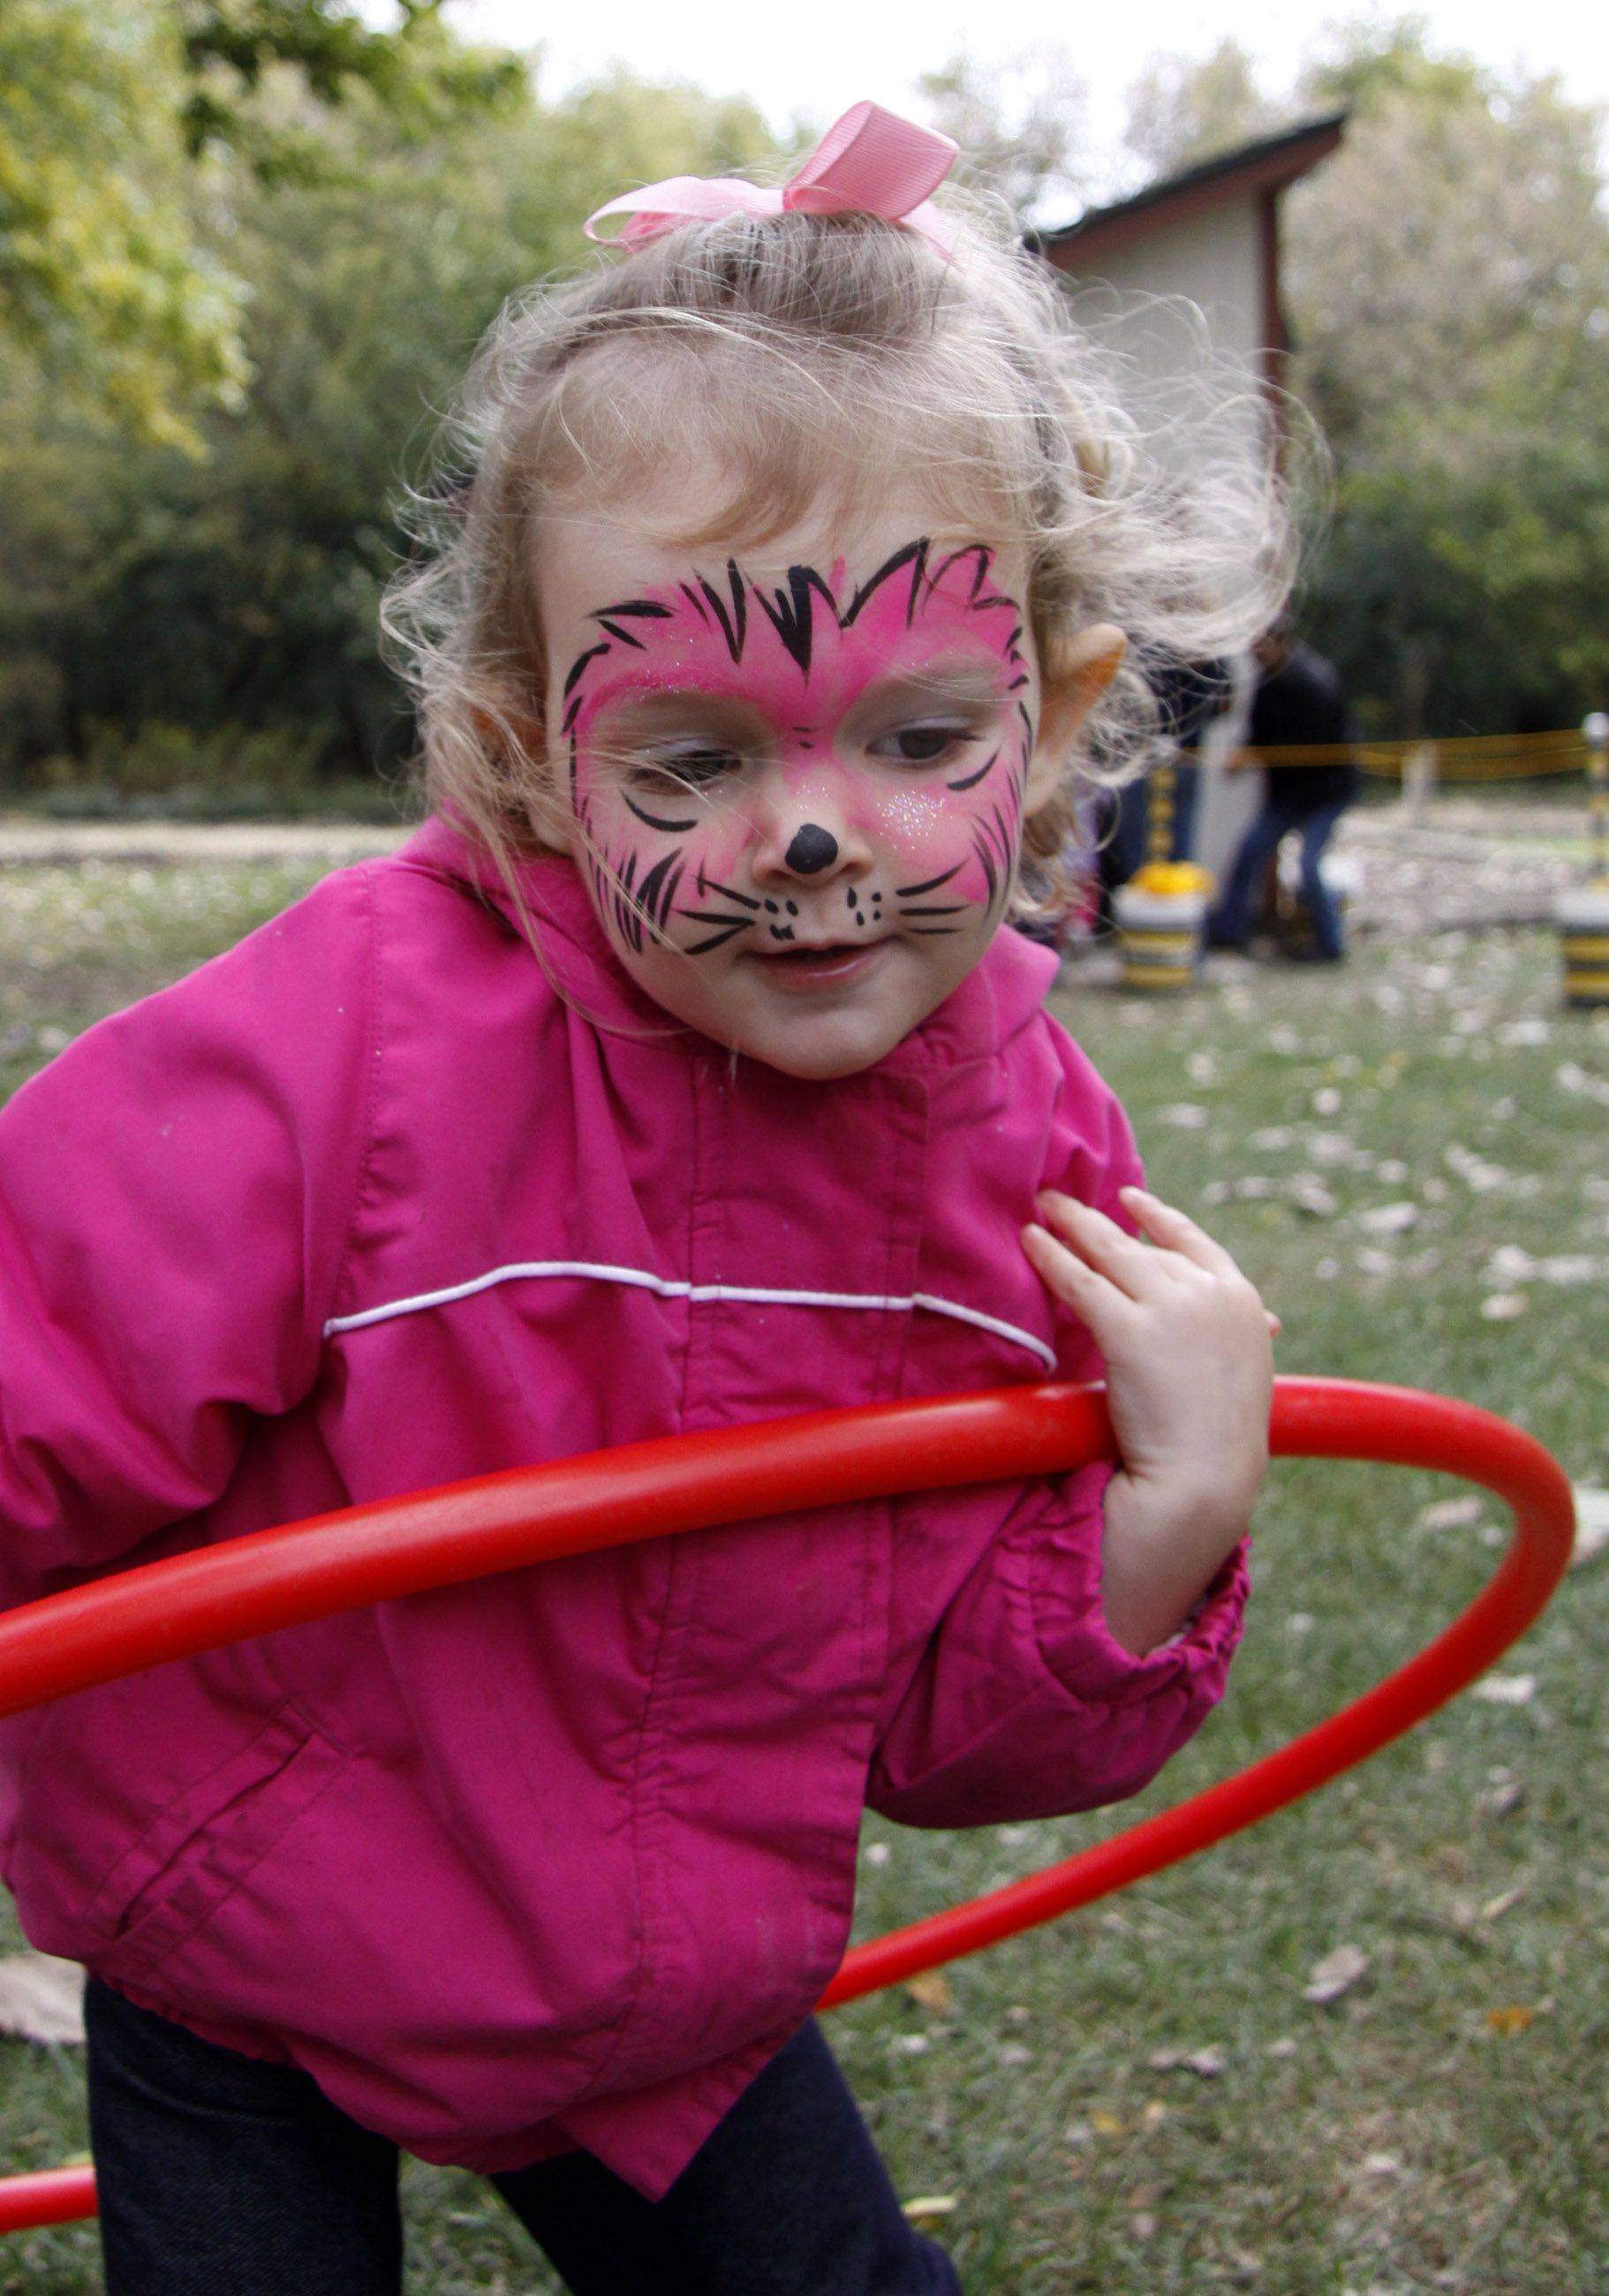 Sophia Kederhauser, 2, of Warrenville, tries out a hula hoop at the Fischer Farm Heritage Day and Bensenville Park District's 50th anniversary Saturday in Bensenville. The event was free and open to the public. Fischer Farm is the oldest remaining homestead in DuPage County.